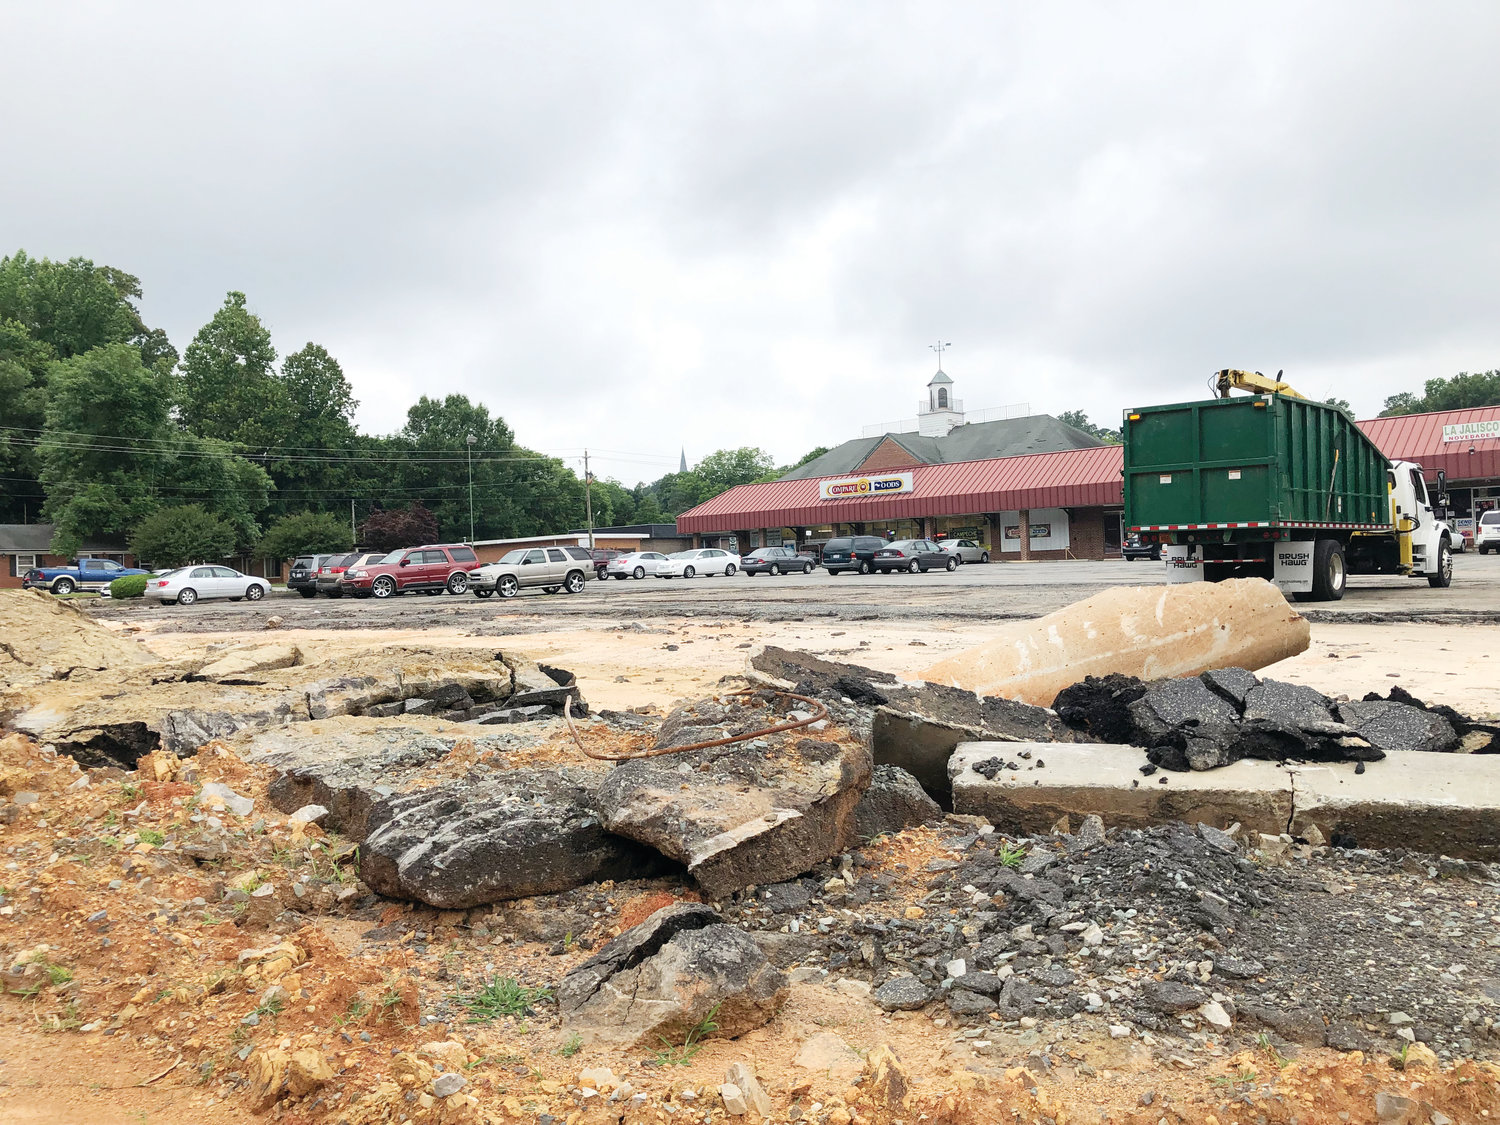 Siler City officials say the deteriorating condition of the Park Shopping Center parking lot violates town ordinances and the property owner could face fines soon if repairs aren't completed.